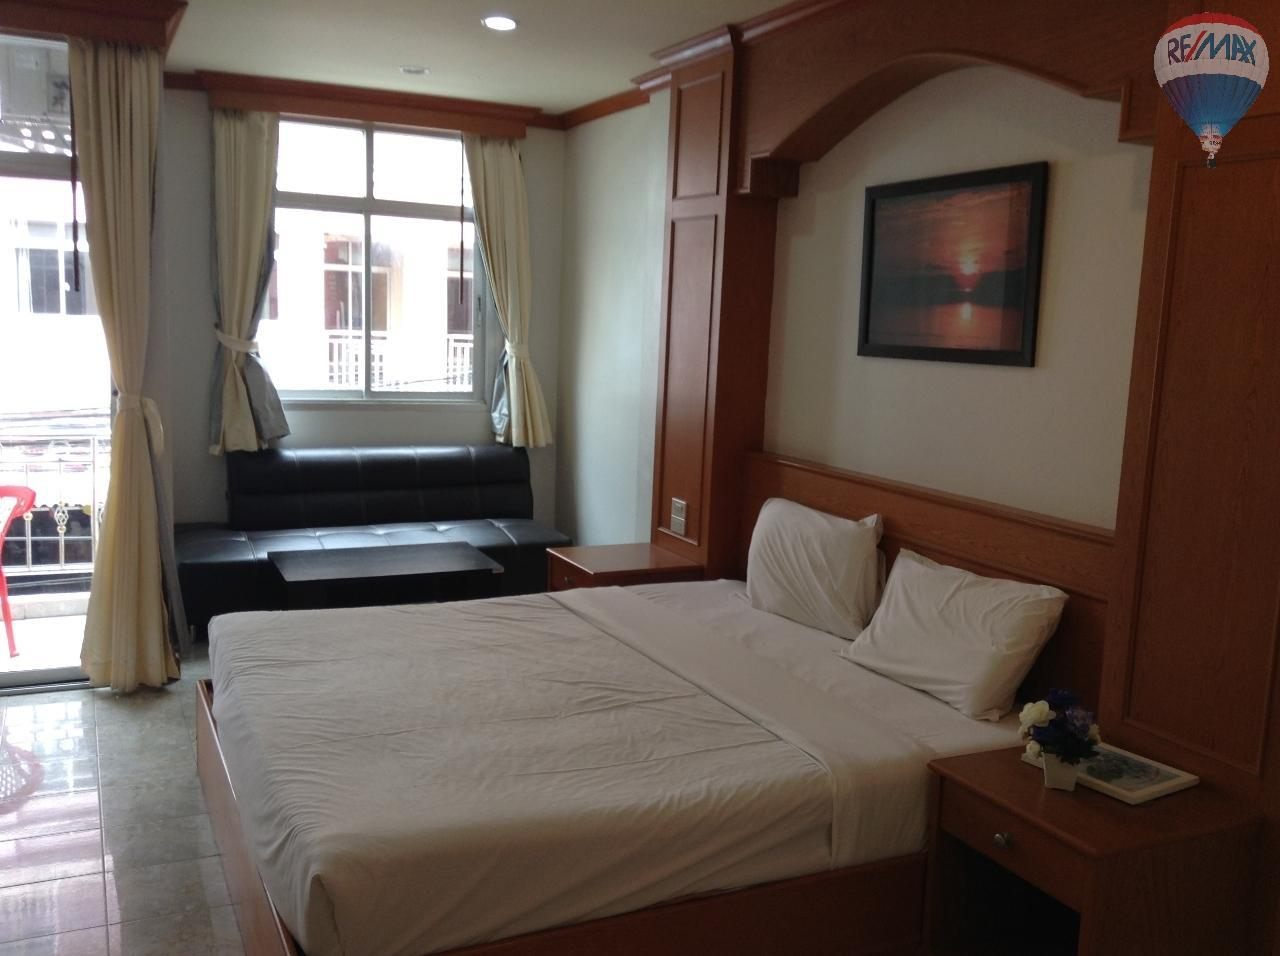 RE/MAX Top Properties Agency's Phuket, Patong Guest House (16 rooms) with Bar/Restaurant For Sale 6